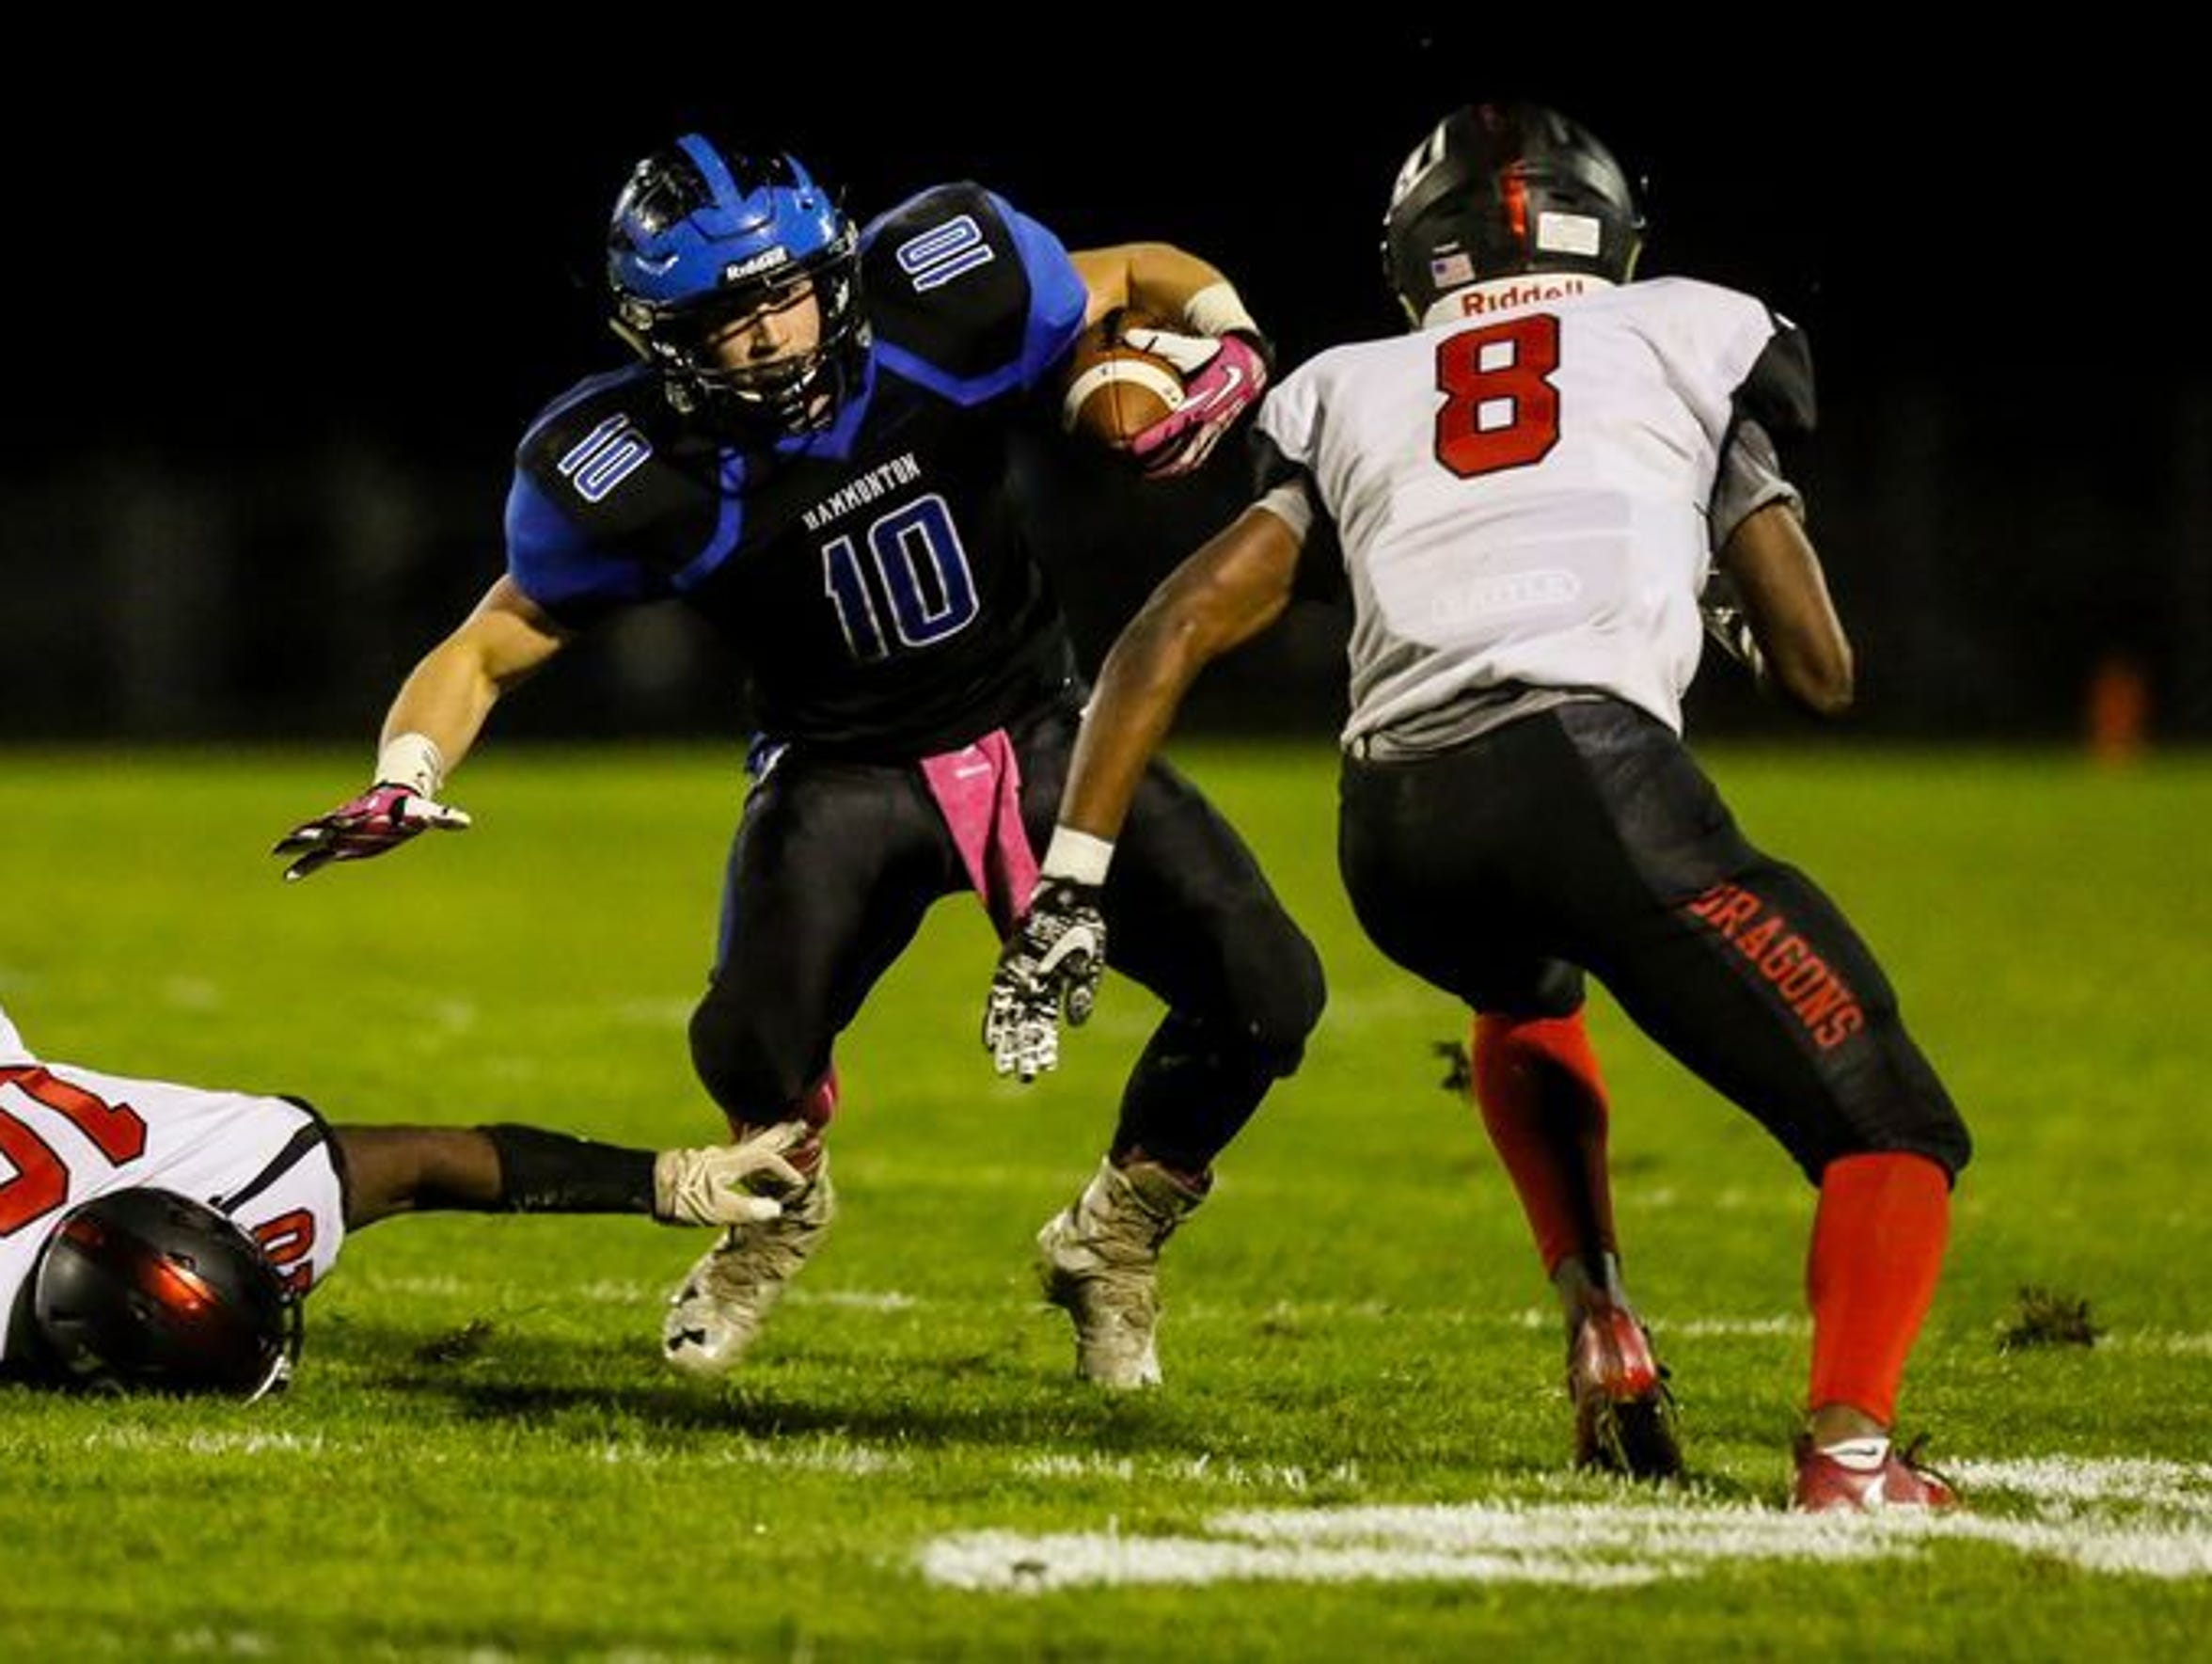 Hammonton's Sean Ryker tries to avoid a tackle during